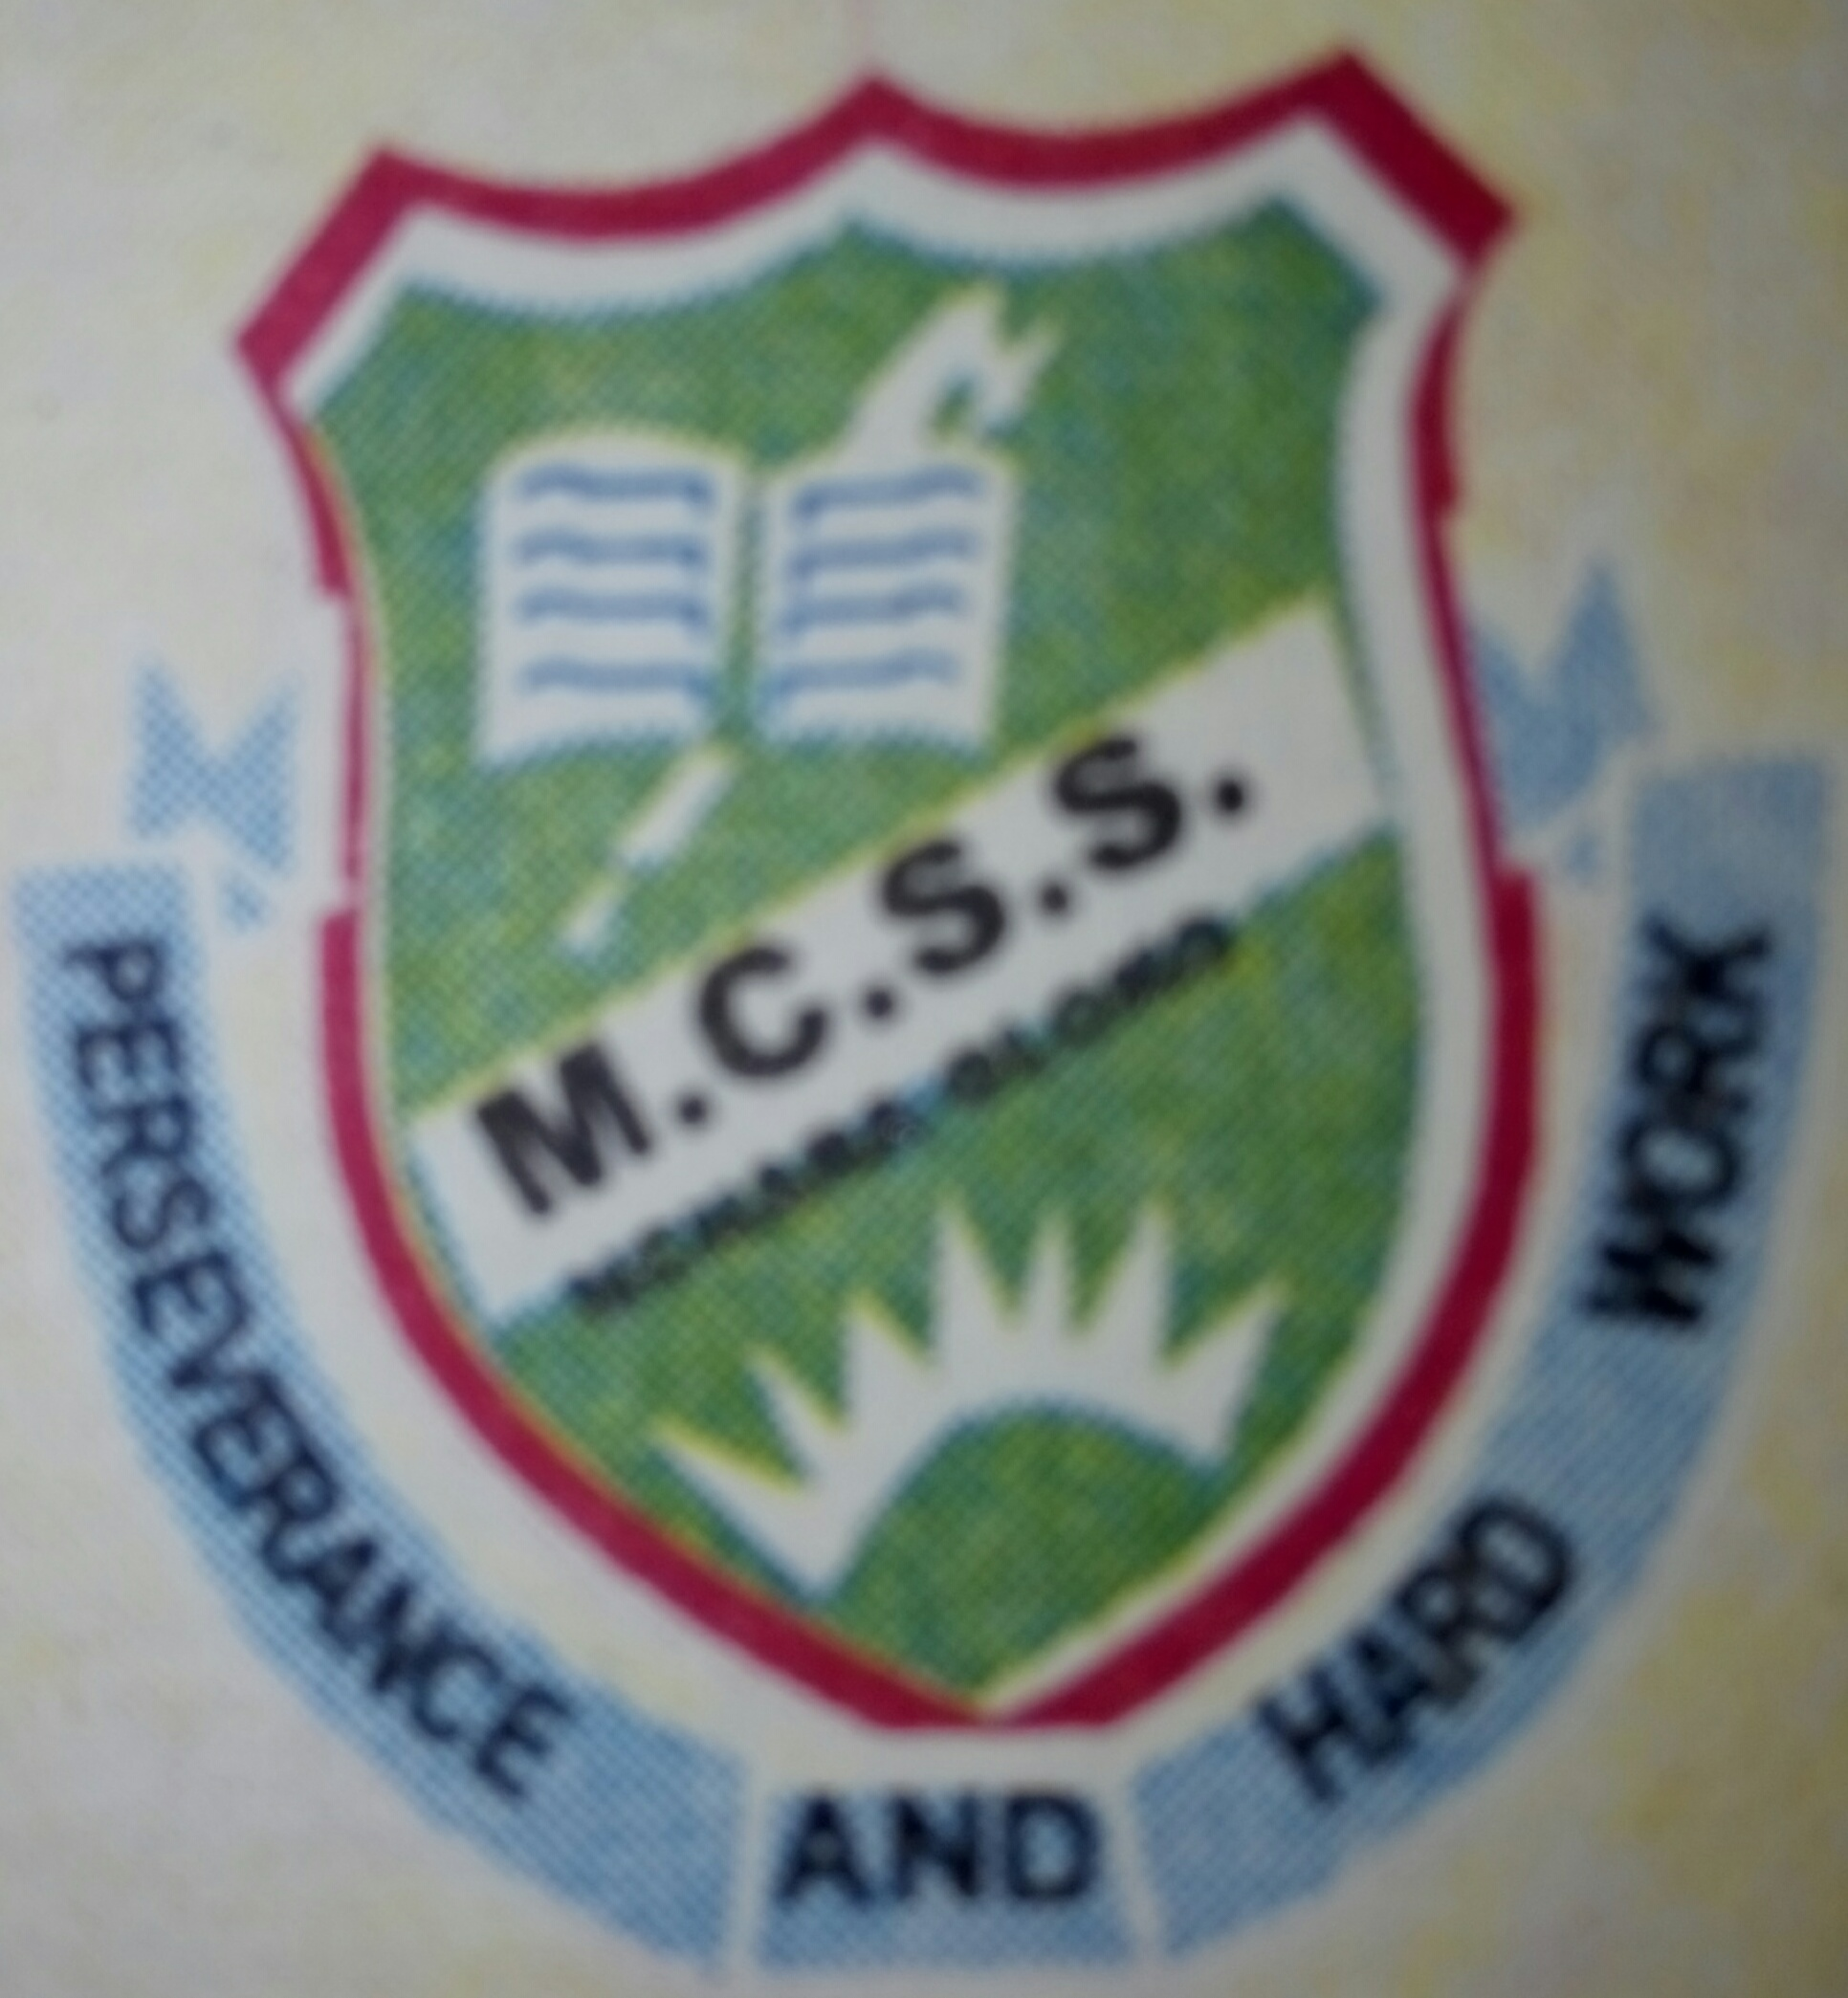 Midtown Comprehensive Secondary School schools in Ikwuano in Ohafia